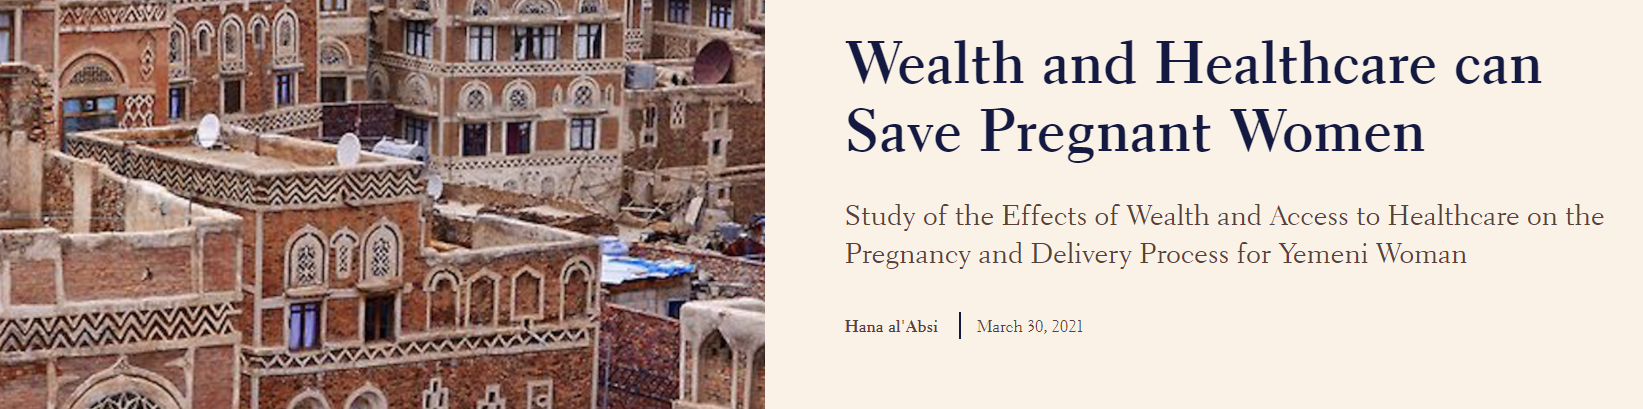 Wealth and Healthcare can Save Pregnant Women